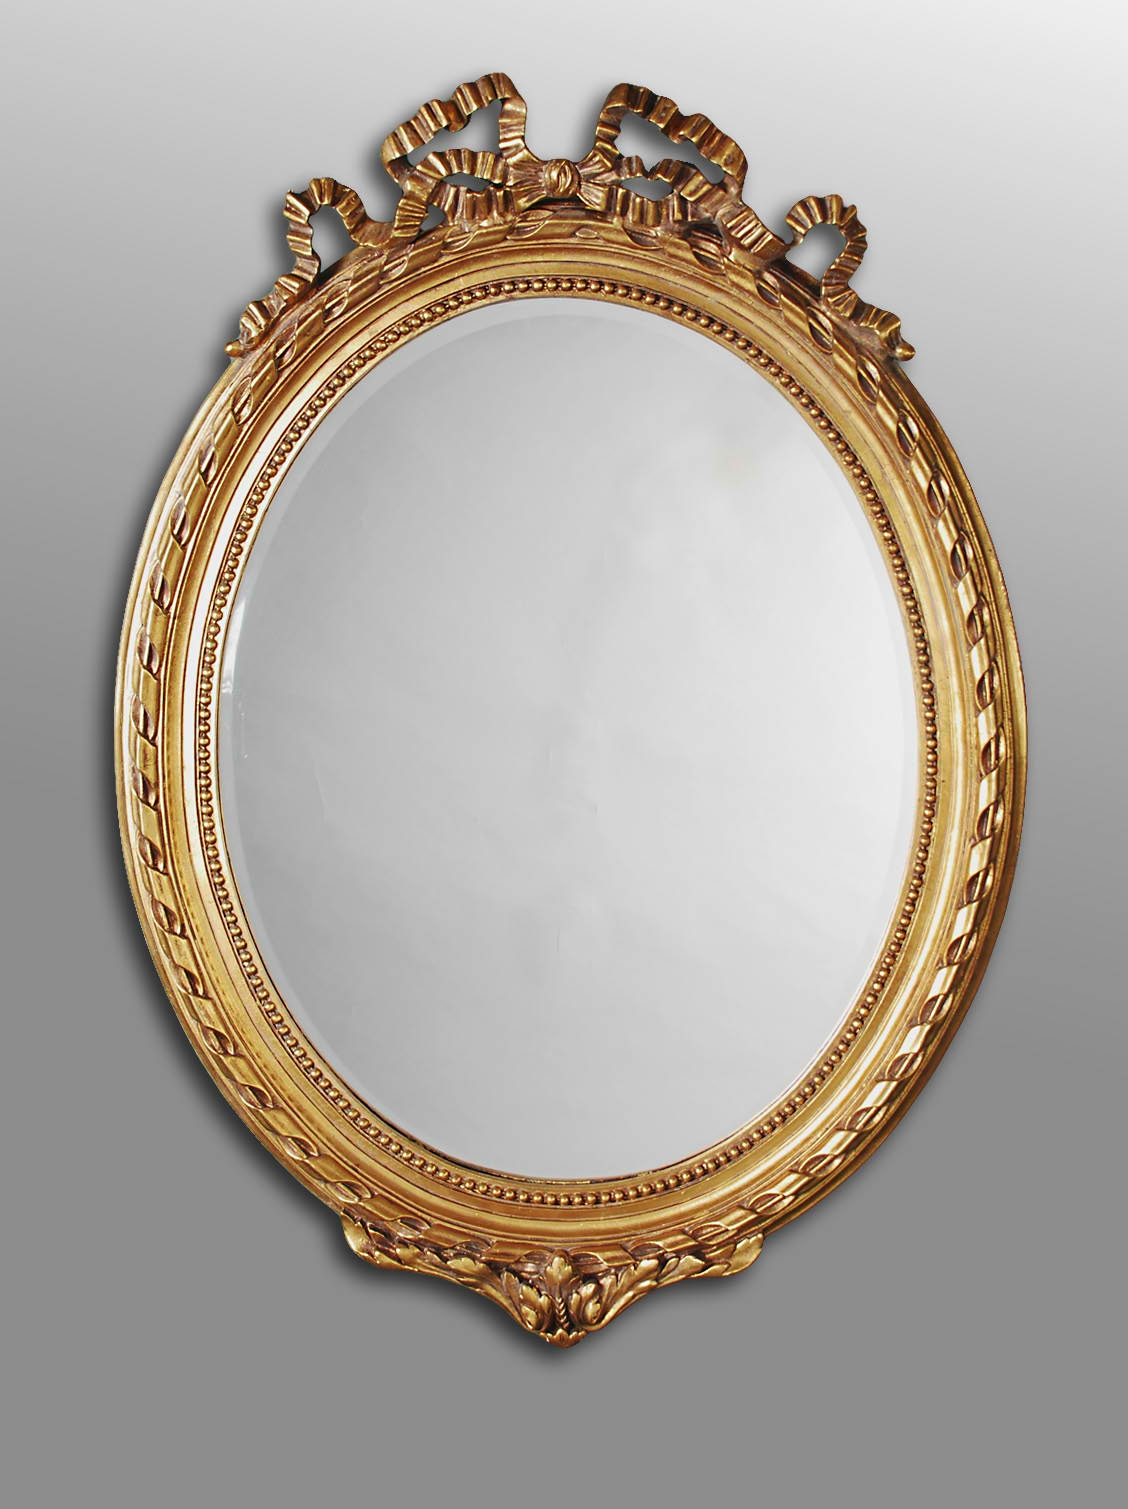 Tips On Making An Antique Mirror With Gold Antique Mirrors (Image 13 of 15)